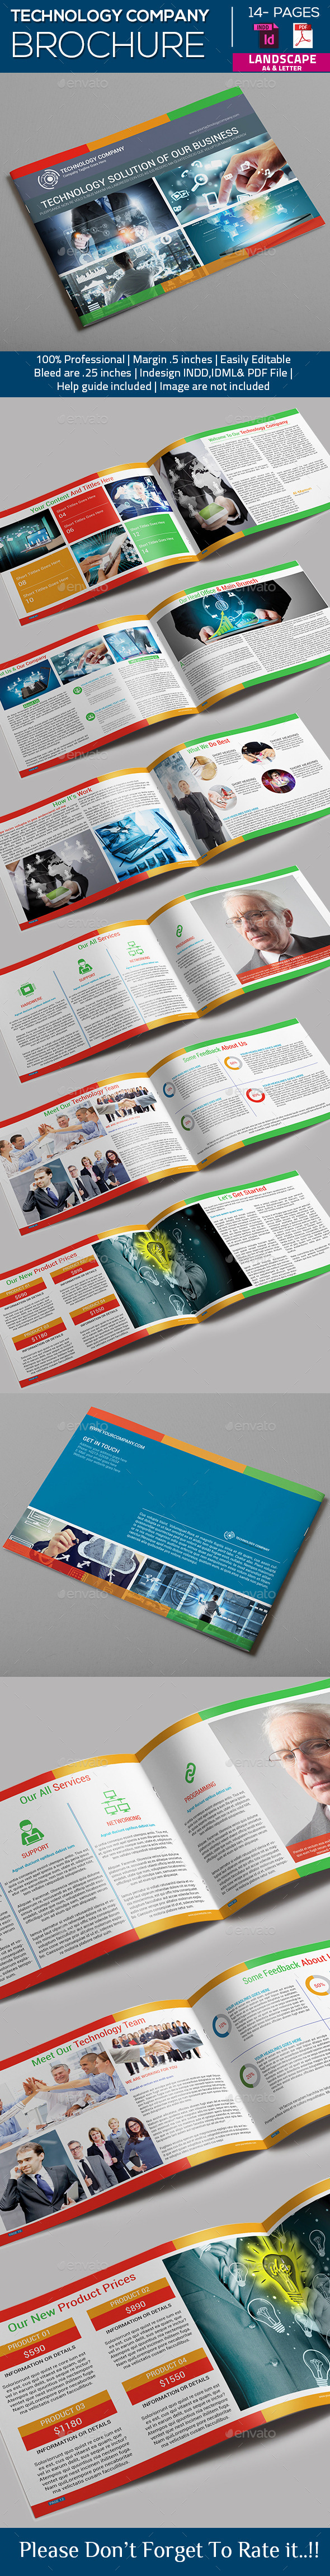 GraphicRiver Technology Company Brochure 10318806